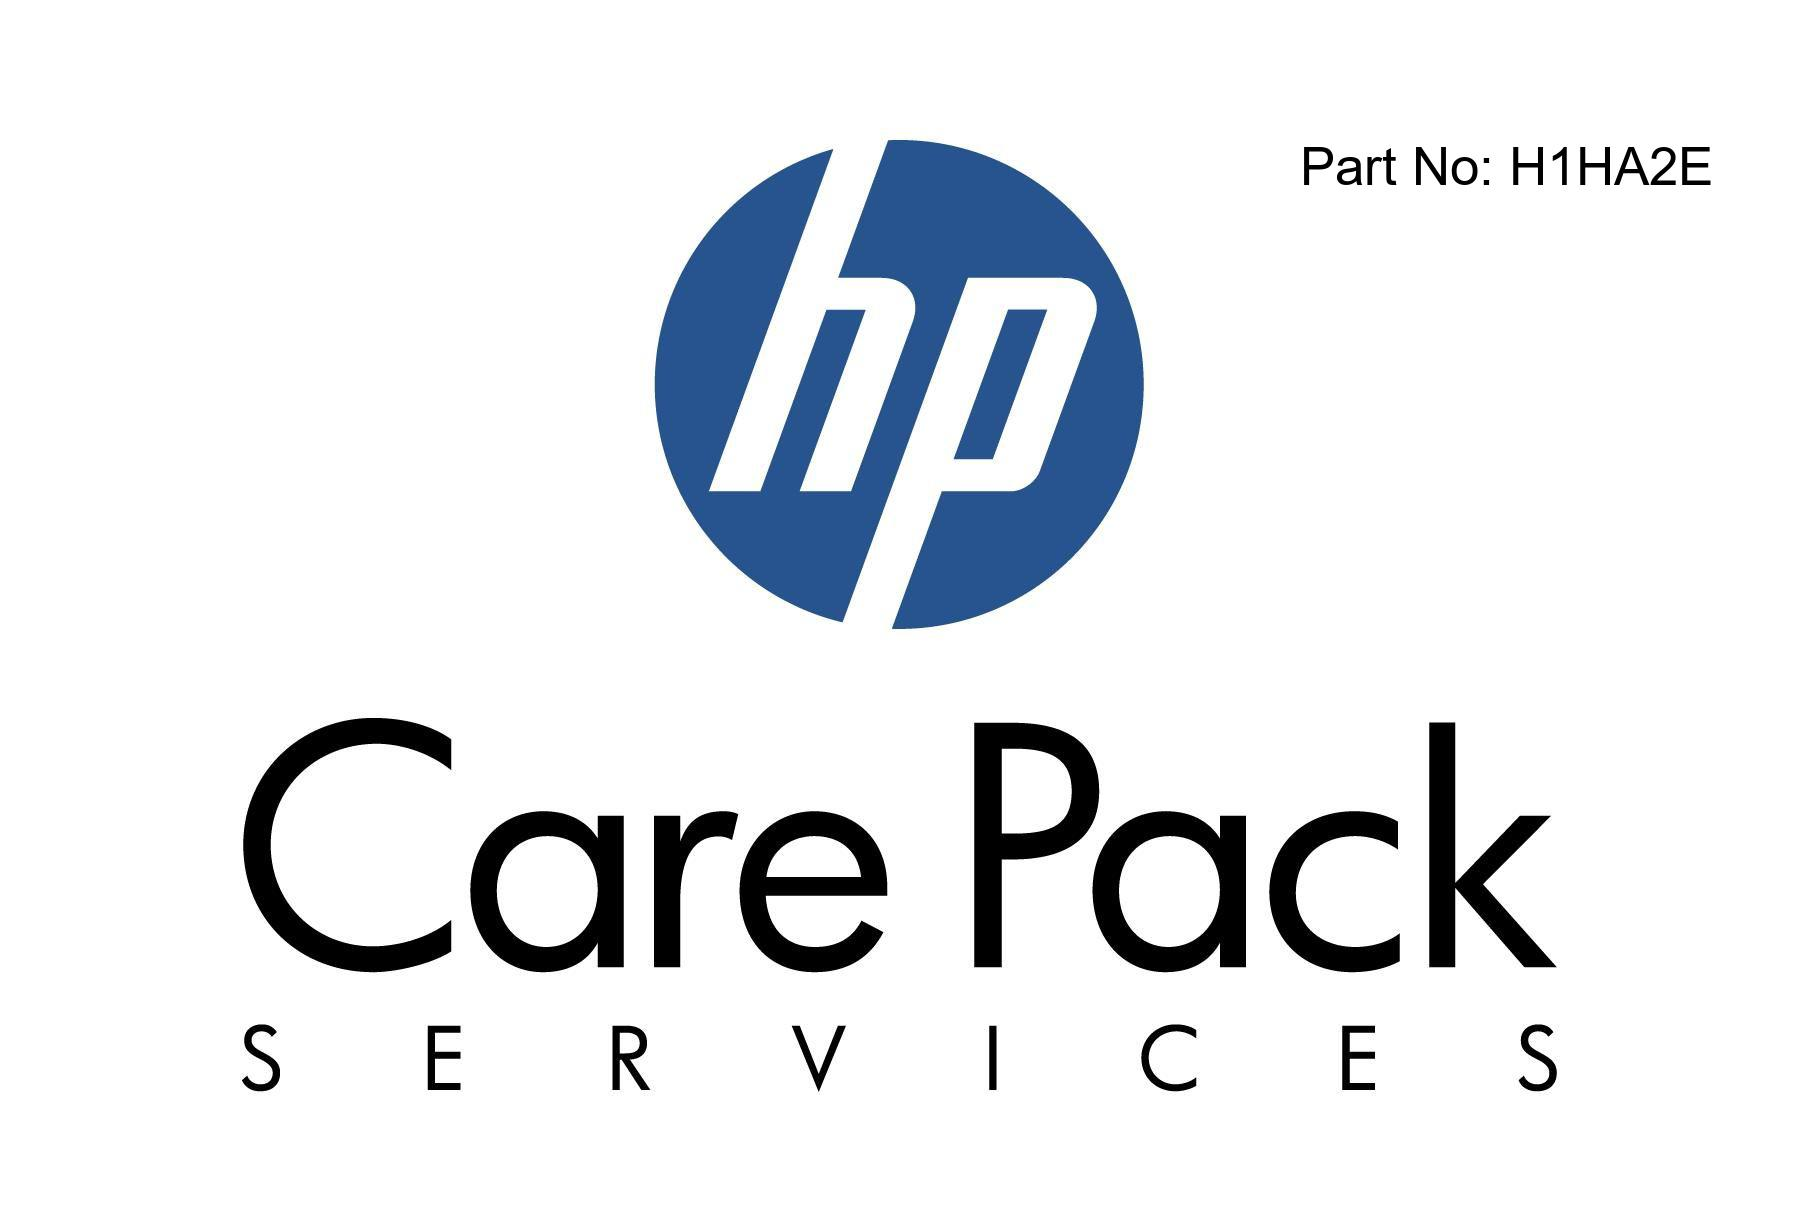 Proactive Care Call-To-Repair Service with Comprehensive Defective Material Retention - Extended service agreement - parts and labor - 5 years - on-site - 24x7 - repair time: 6 hours